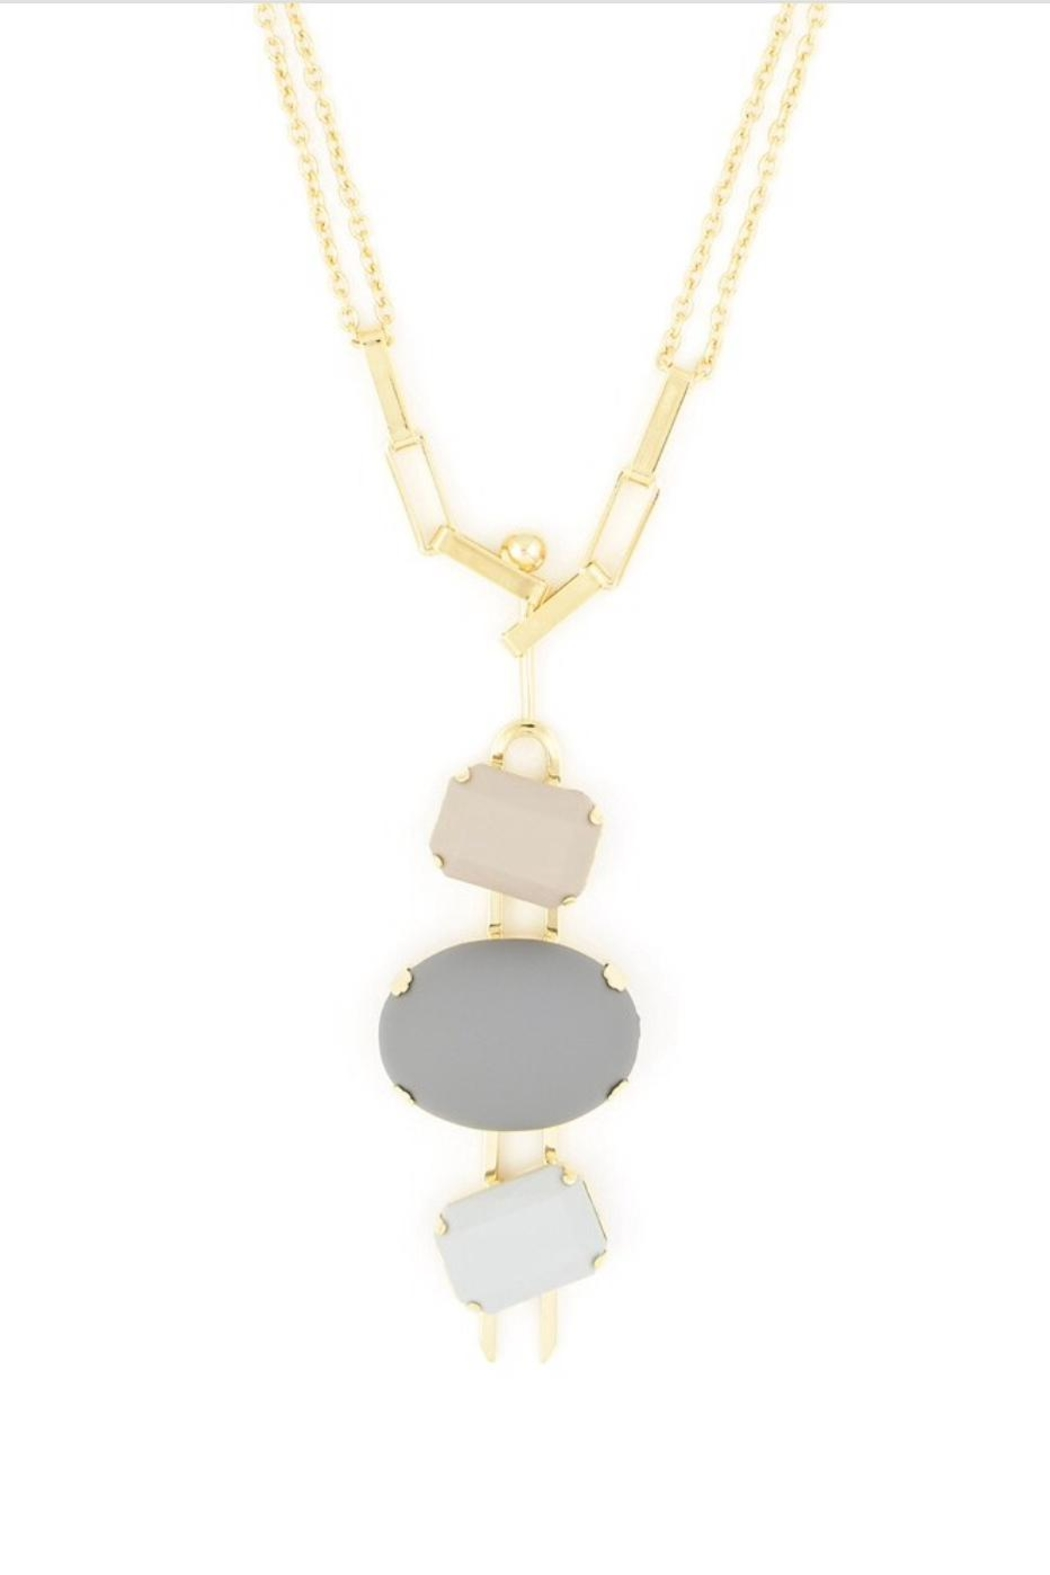 Zenzii matte shapes necklace from baltimore by freesia shoptiques zenzii matte shapes necklace front full image aloadofball Gallery